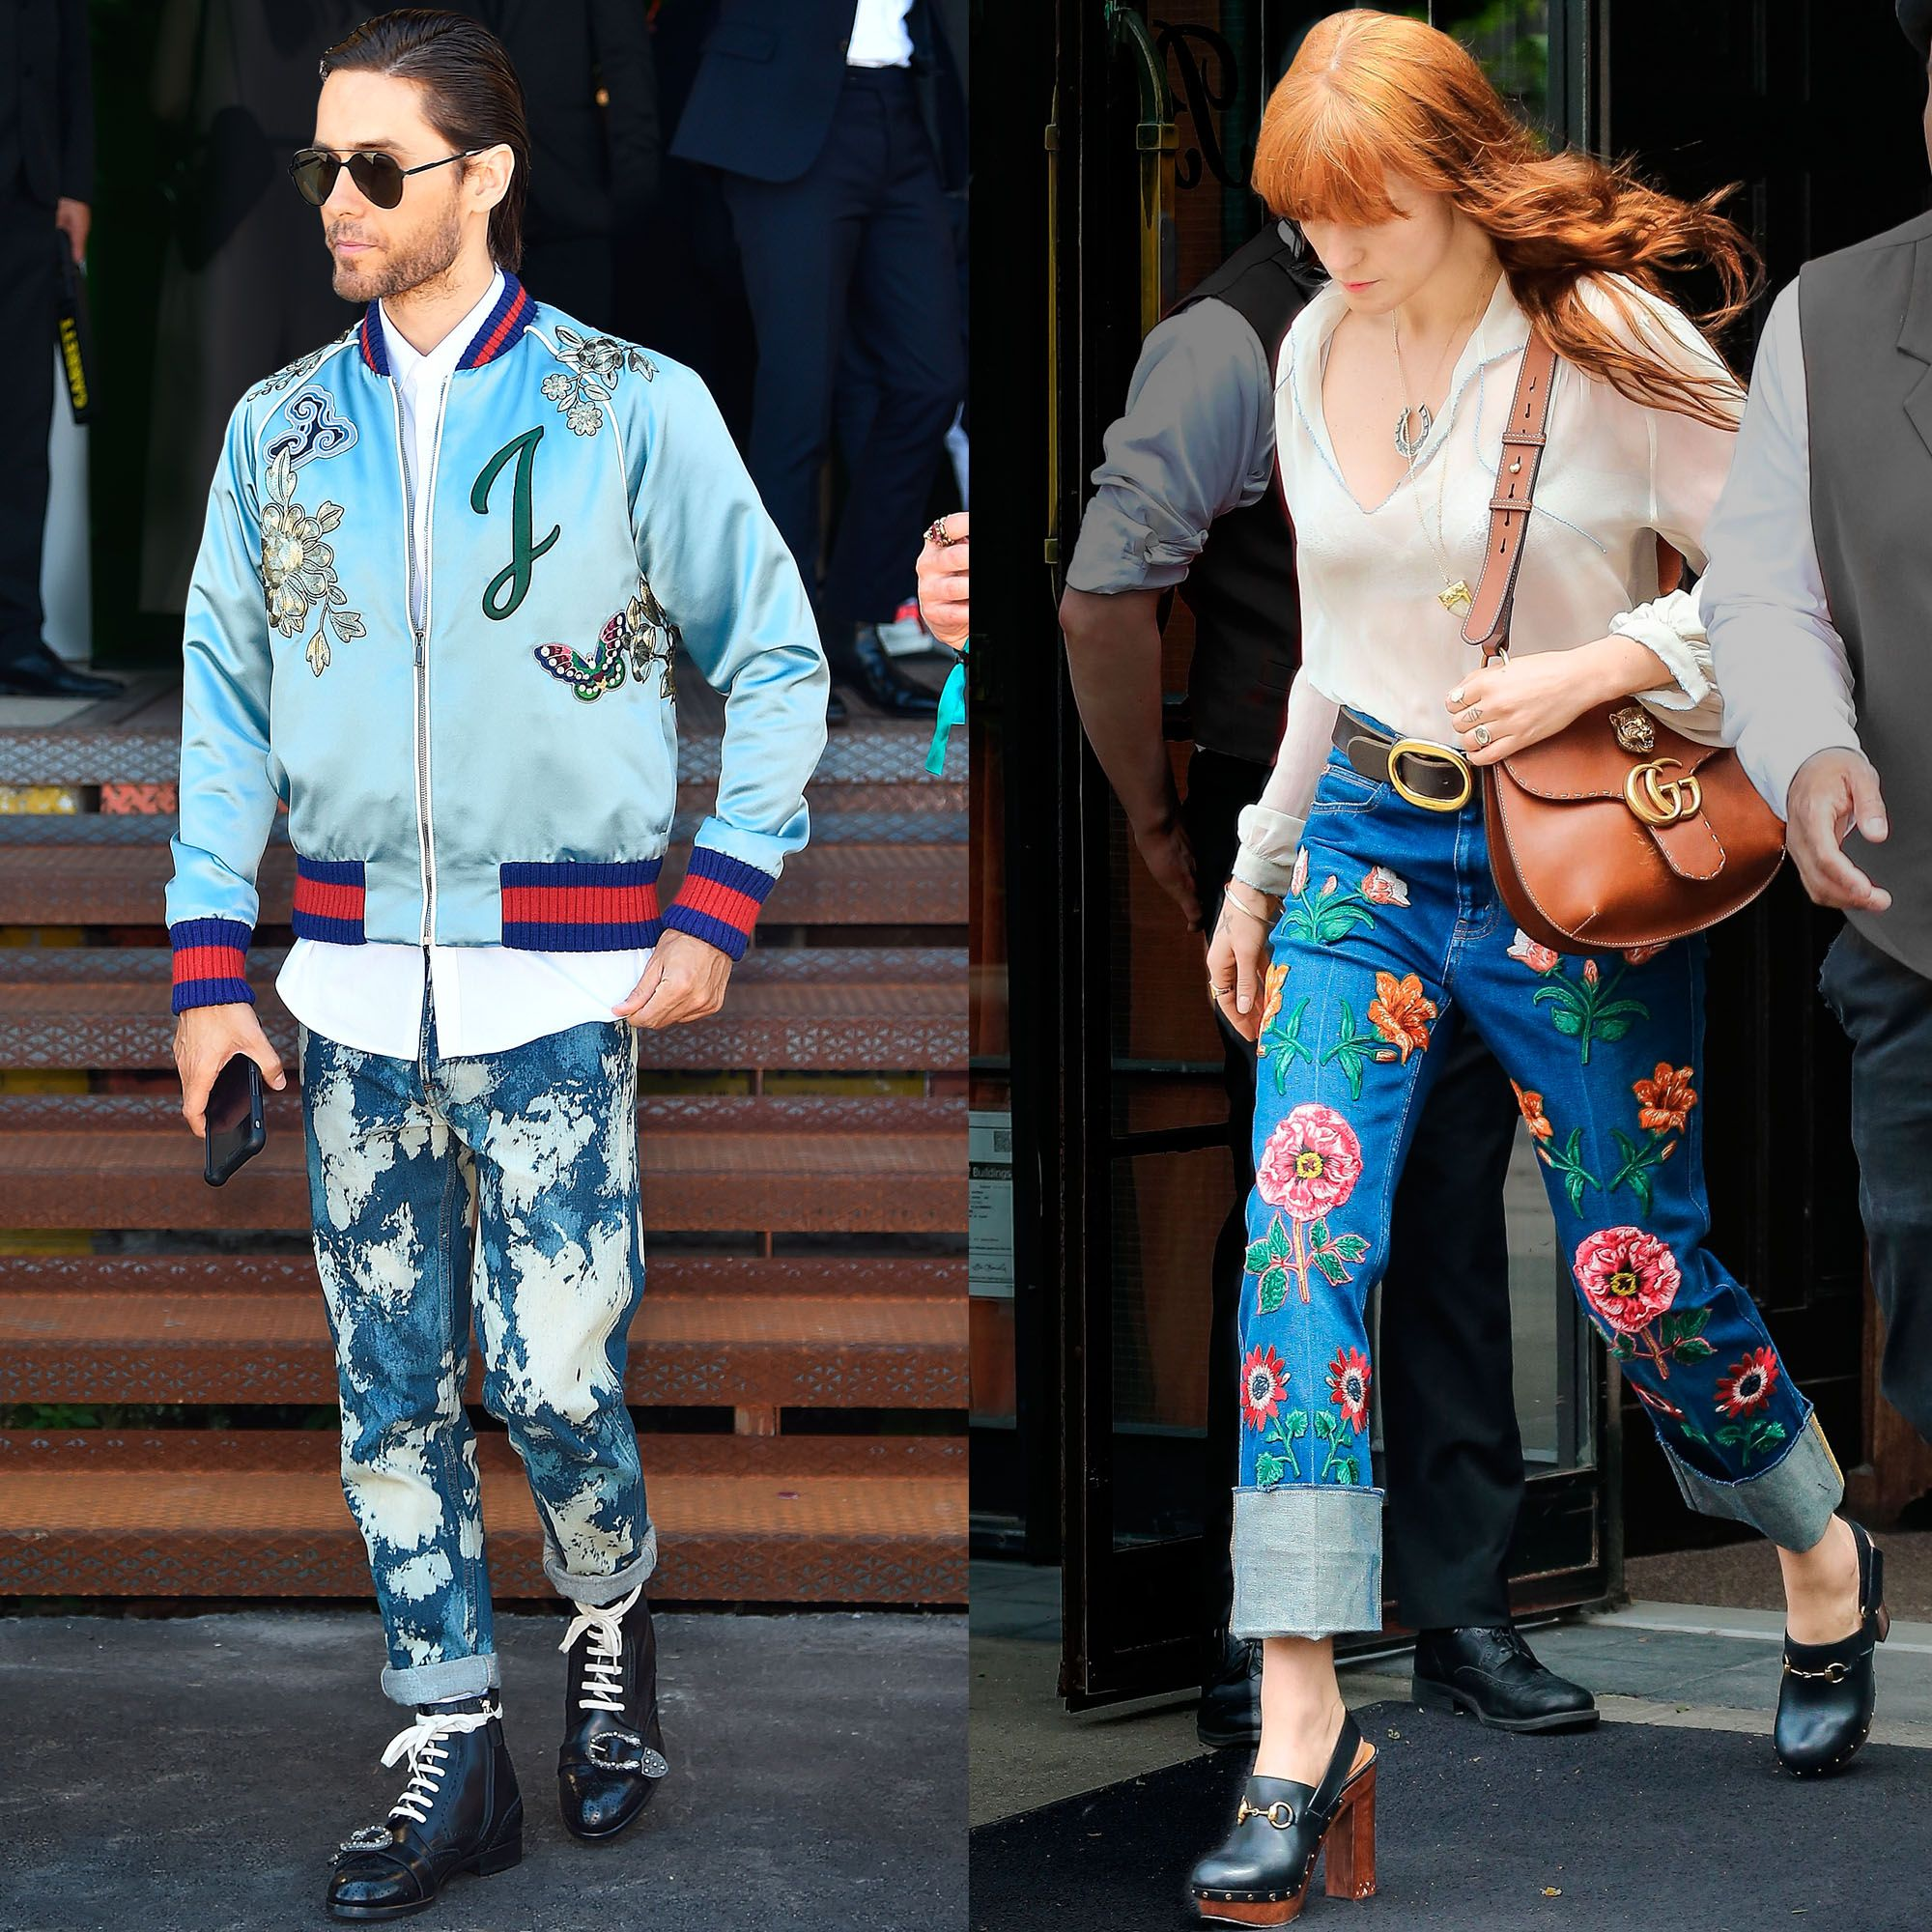 """<p>Ornate embroidery has been Alessandro Michele's m.o. since he took the reins as creative director of Gucci last year. Bags and bombers aside, denim served as his most recent canvas. Think faded jean jackets with satin collars and light-washed minis covered in flora and fauna that are already favored by his famous fans.<span class=""""redactor-invisible-space"""" data-verified=""""redactor"""" data-redactor-tag=""""span"""" data-redactor-class=""""redactor-invisible-space""""></span></p>"""